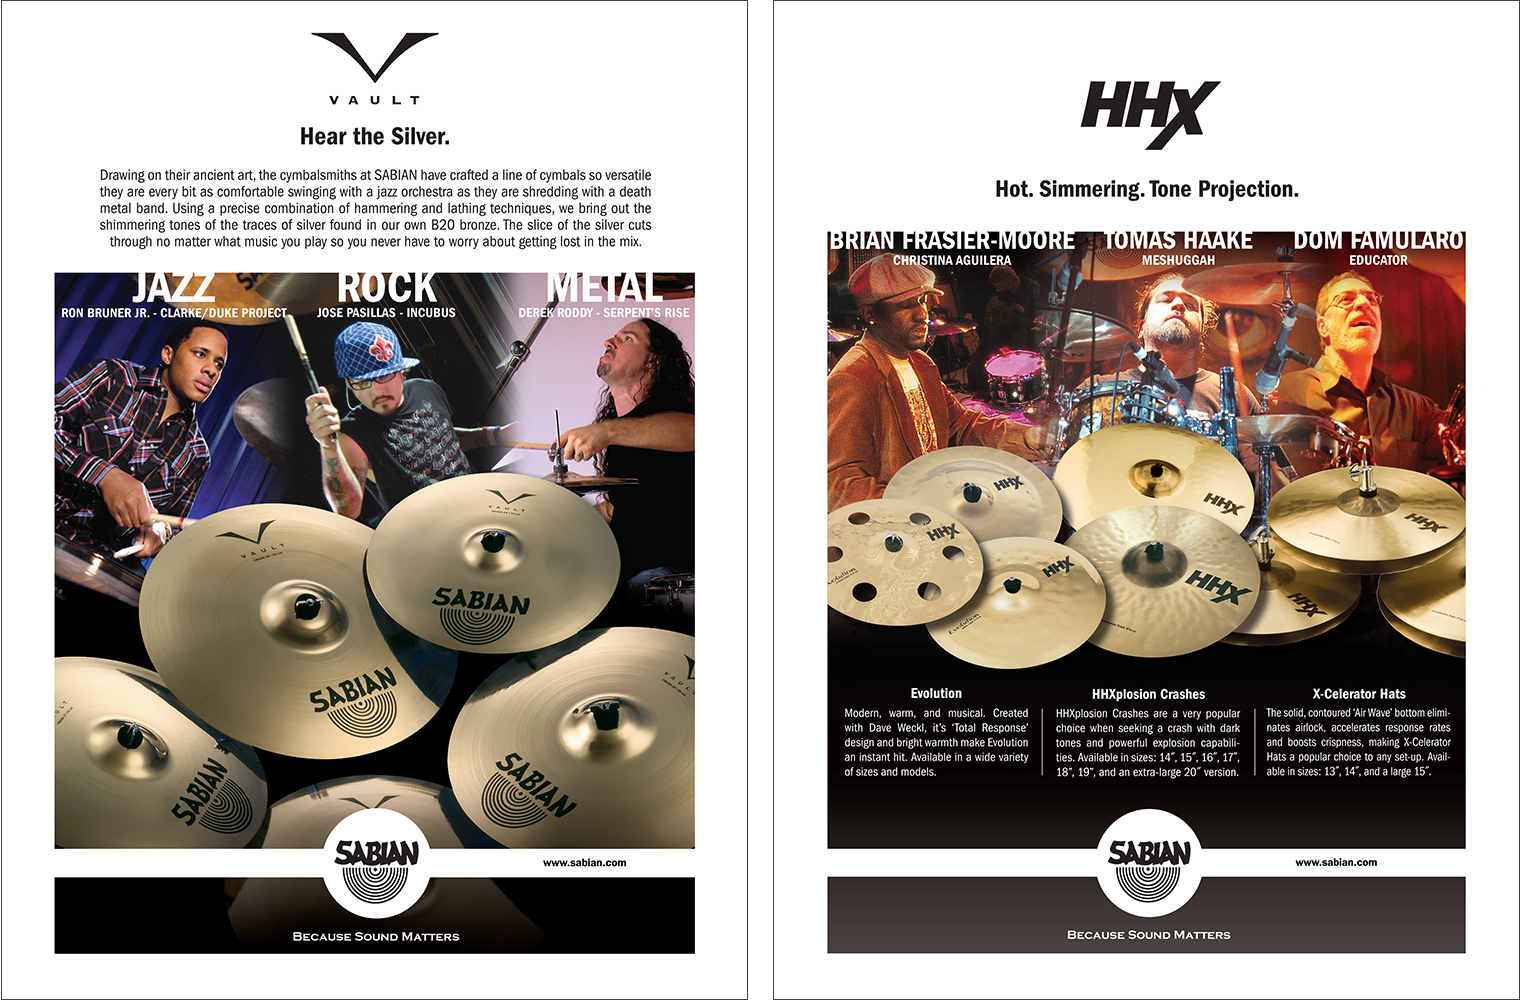 VAULT & HHX CYMBALS (TRADE ADVERTISING)